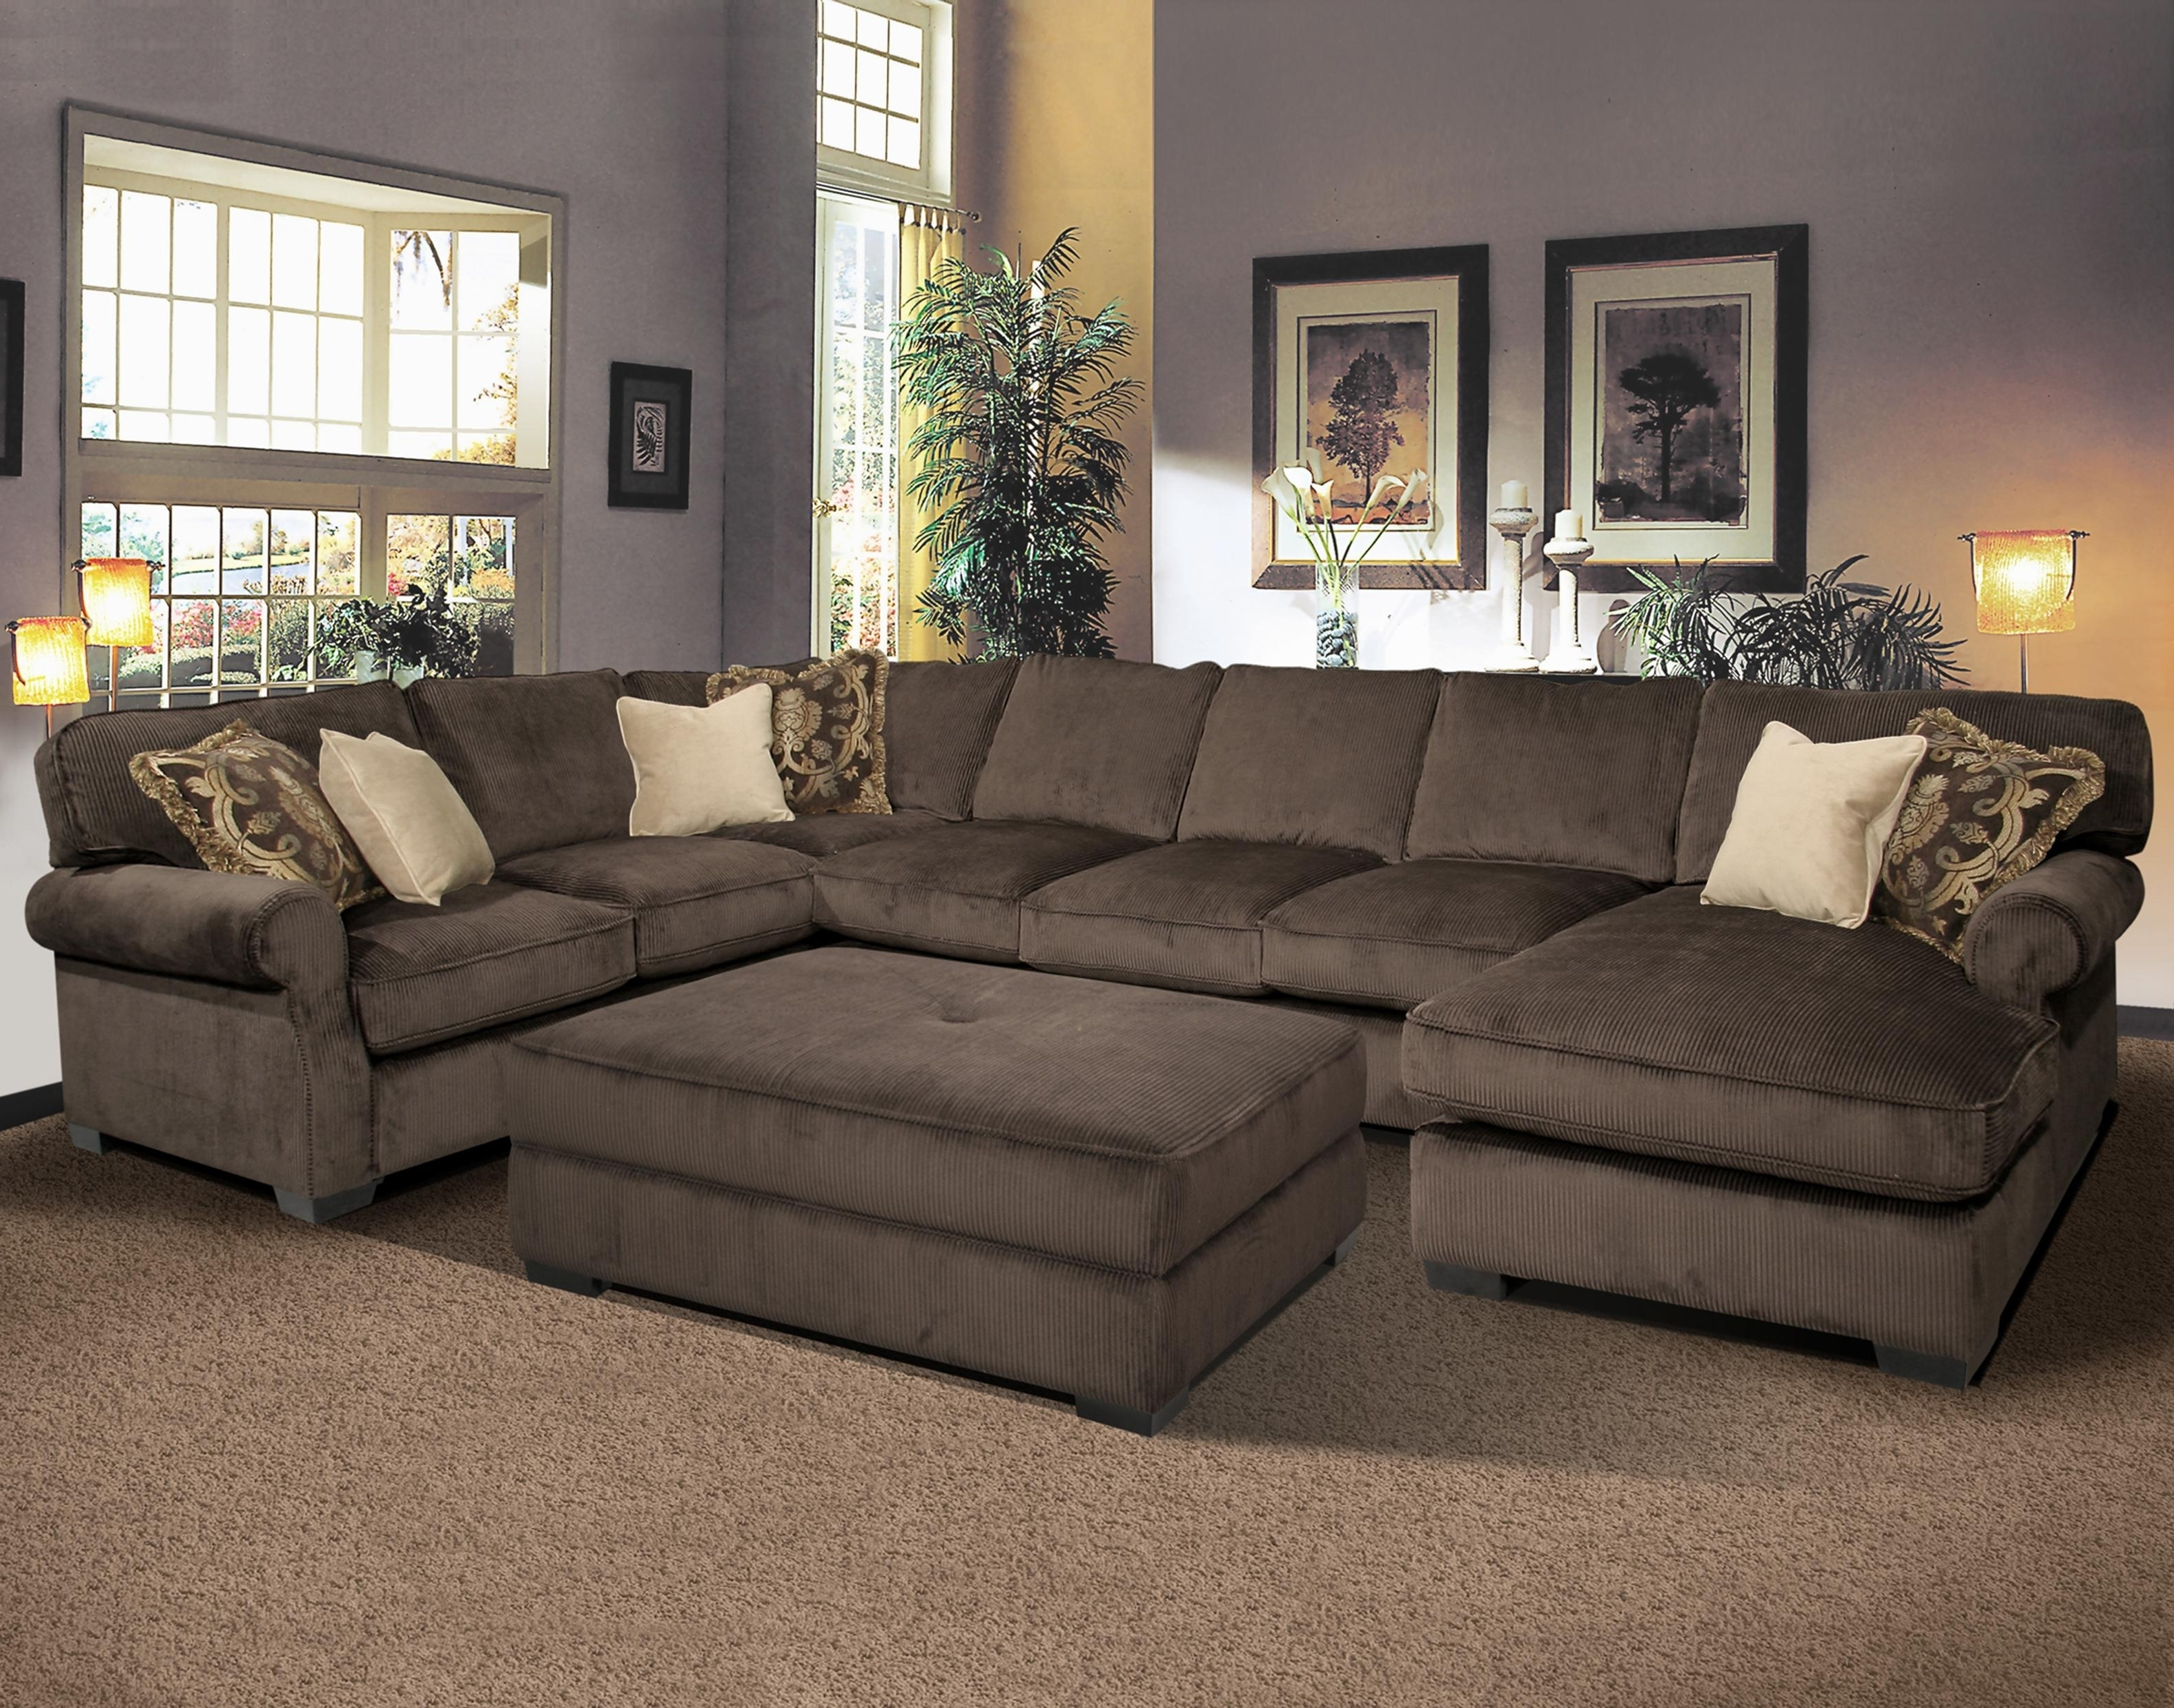 Popular Decorate Deep Sectional Sofa With Pillows The Decoras Intended For Sectional Sofas Decorating (View 13 of 15)